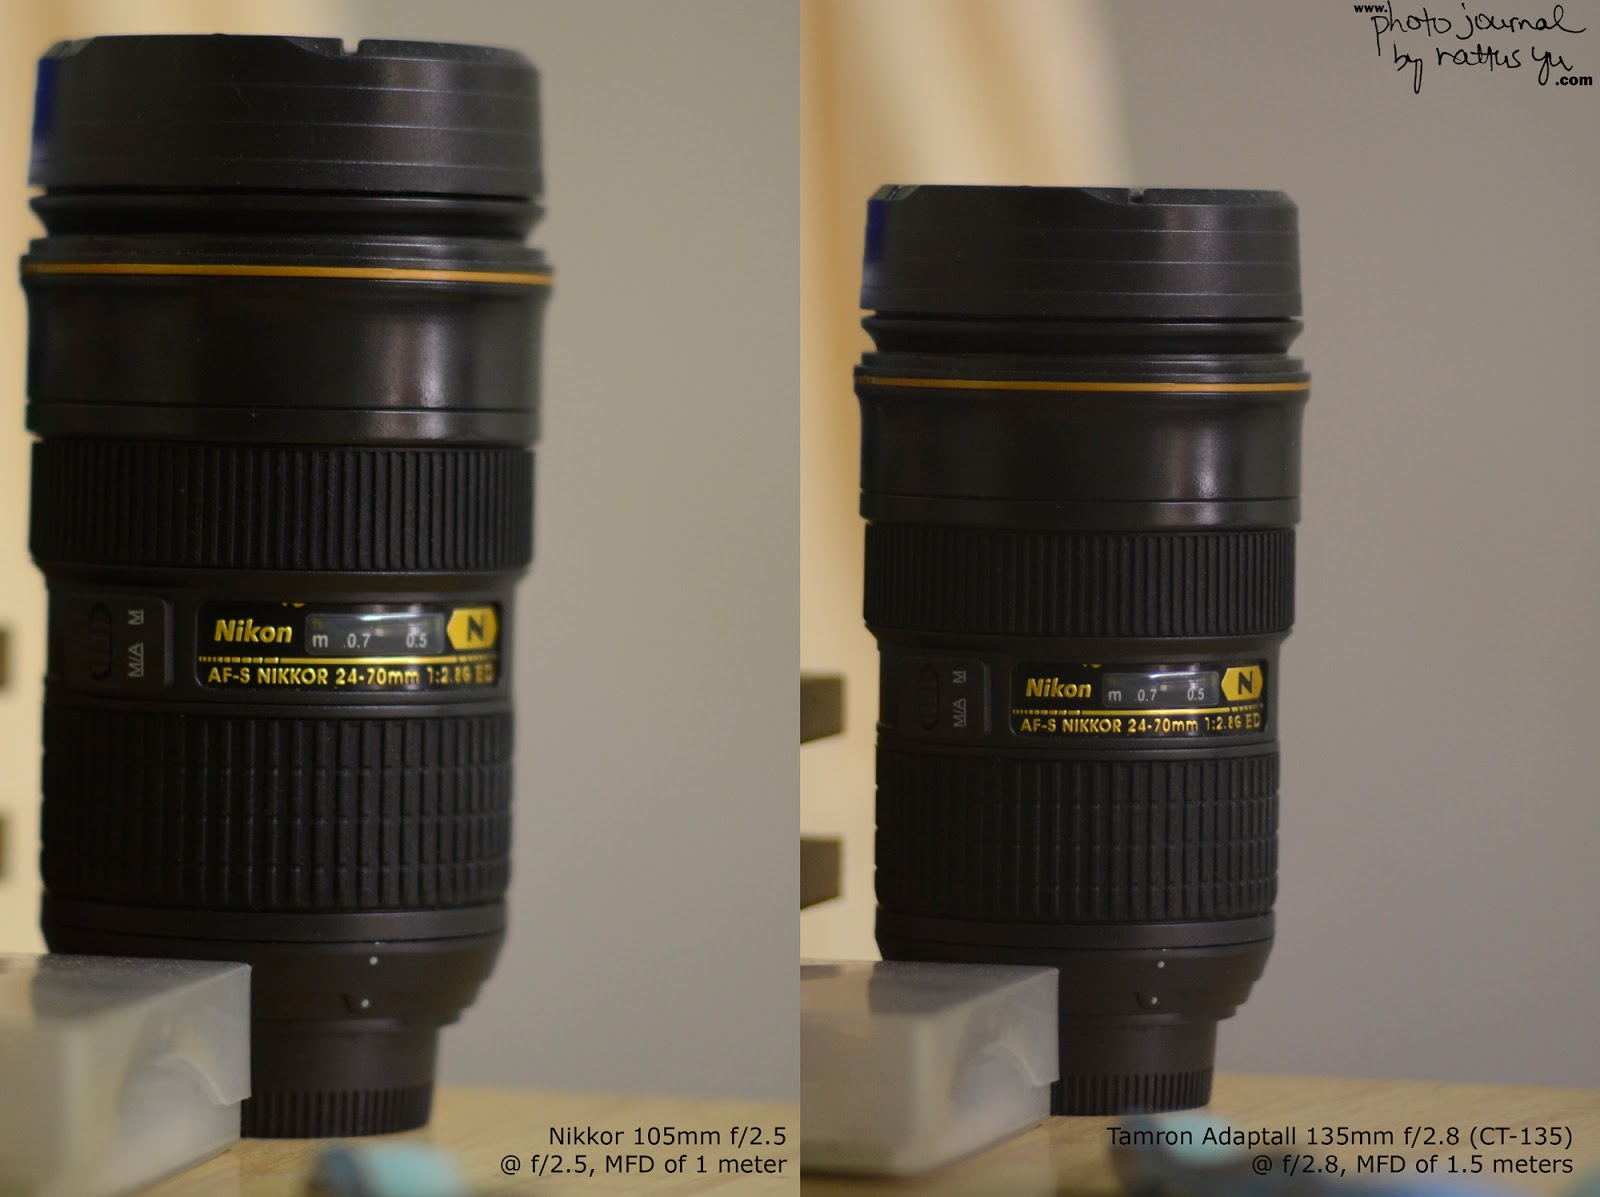 Tamron Adaptall 135mm f/2.8 BBAR Multicoated (CT-135)